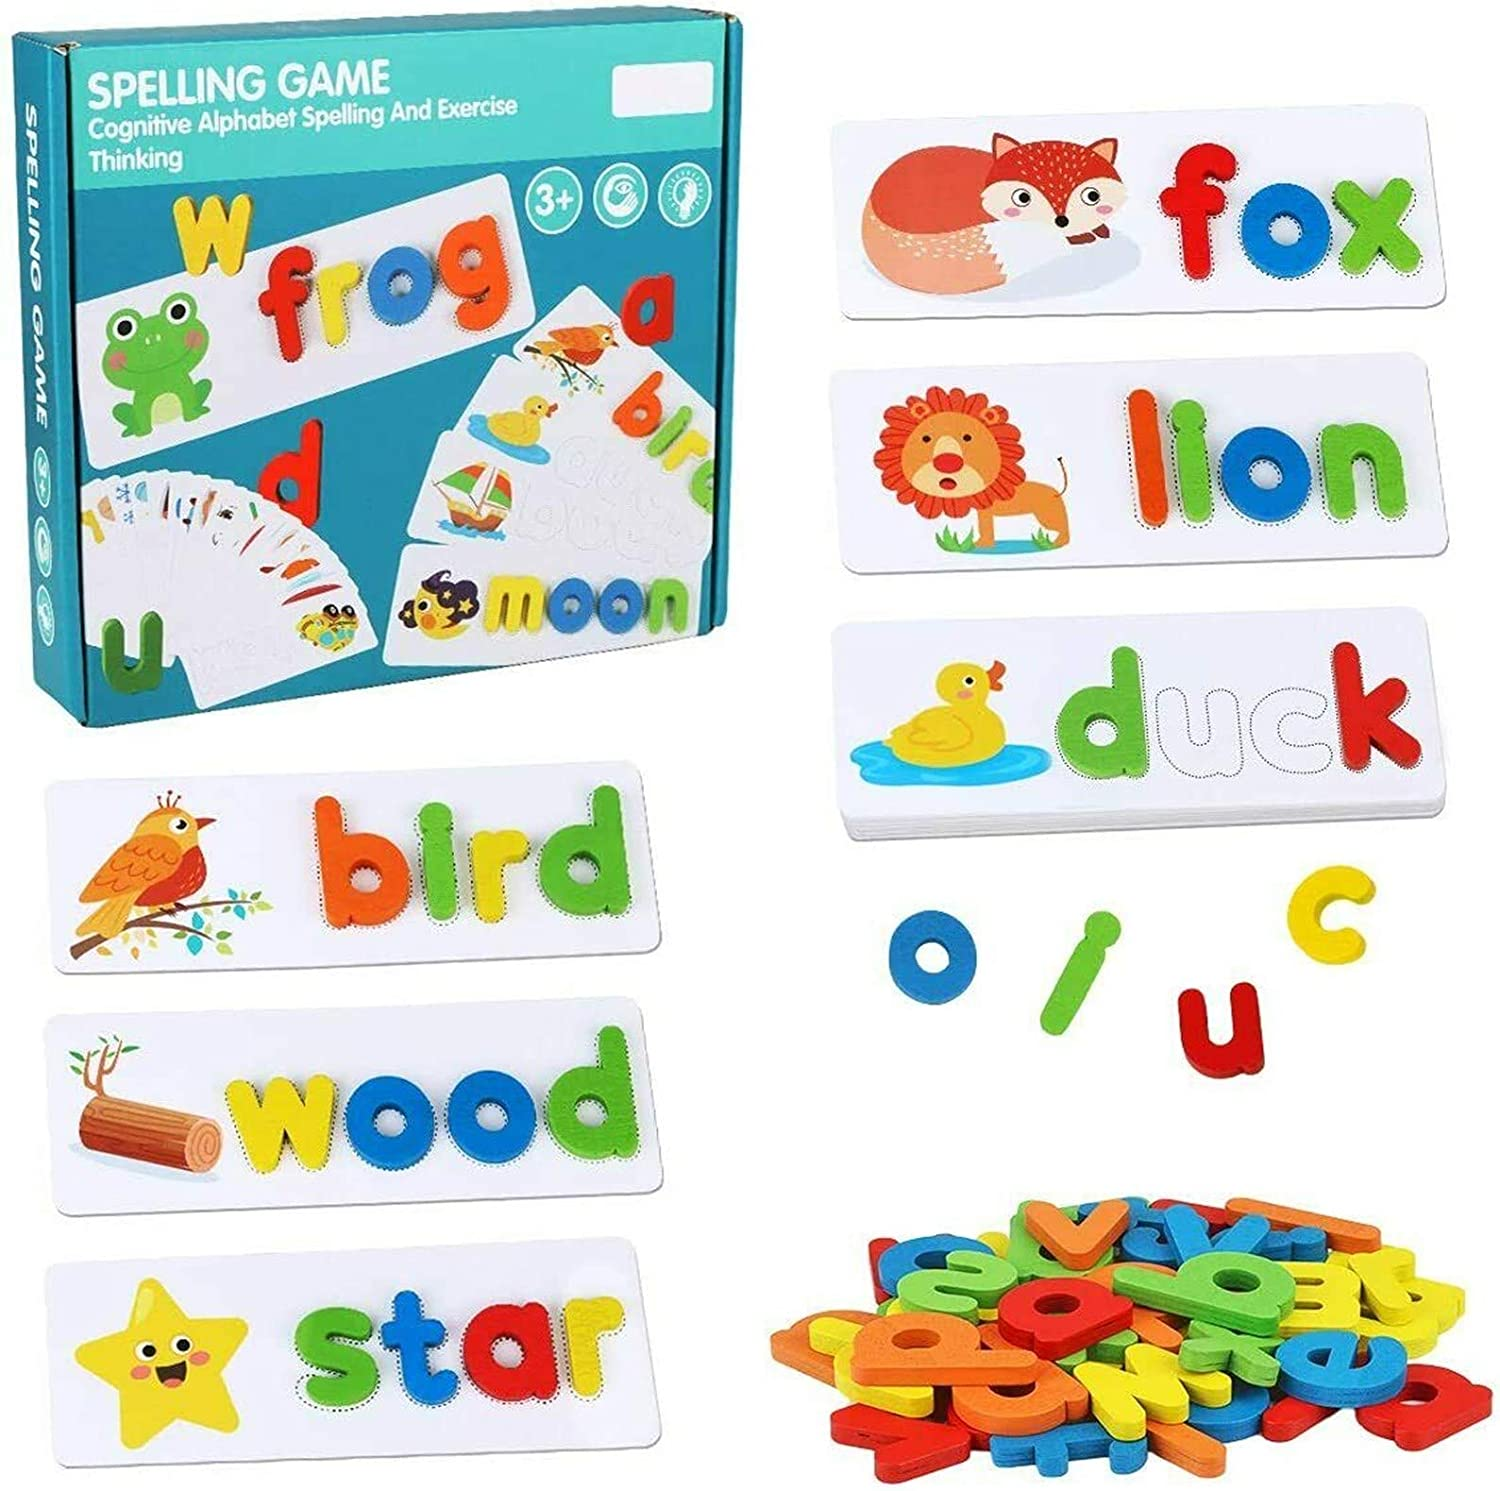 See and Spelling Learning Toys Wooden Educational Matching Letter Game Toys- Develop Letter Word Spelling Skills Letter Blocks for Girls 3-8 Years Old Girls Boys Big Gifts